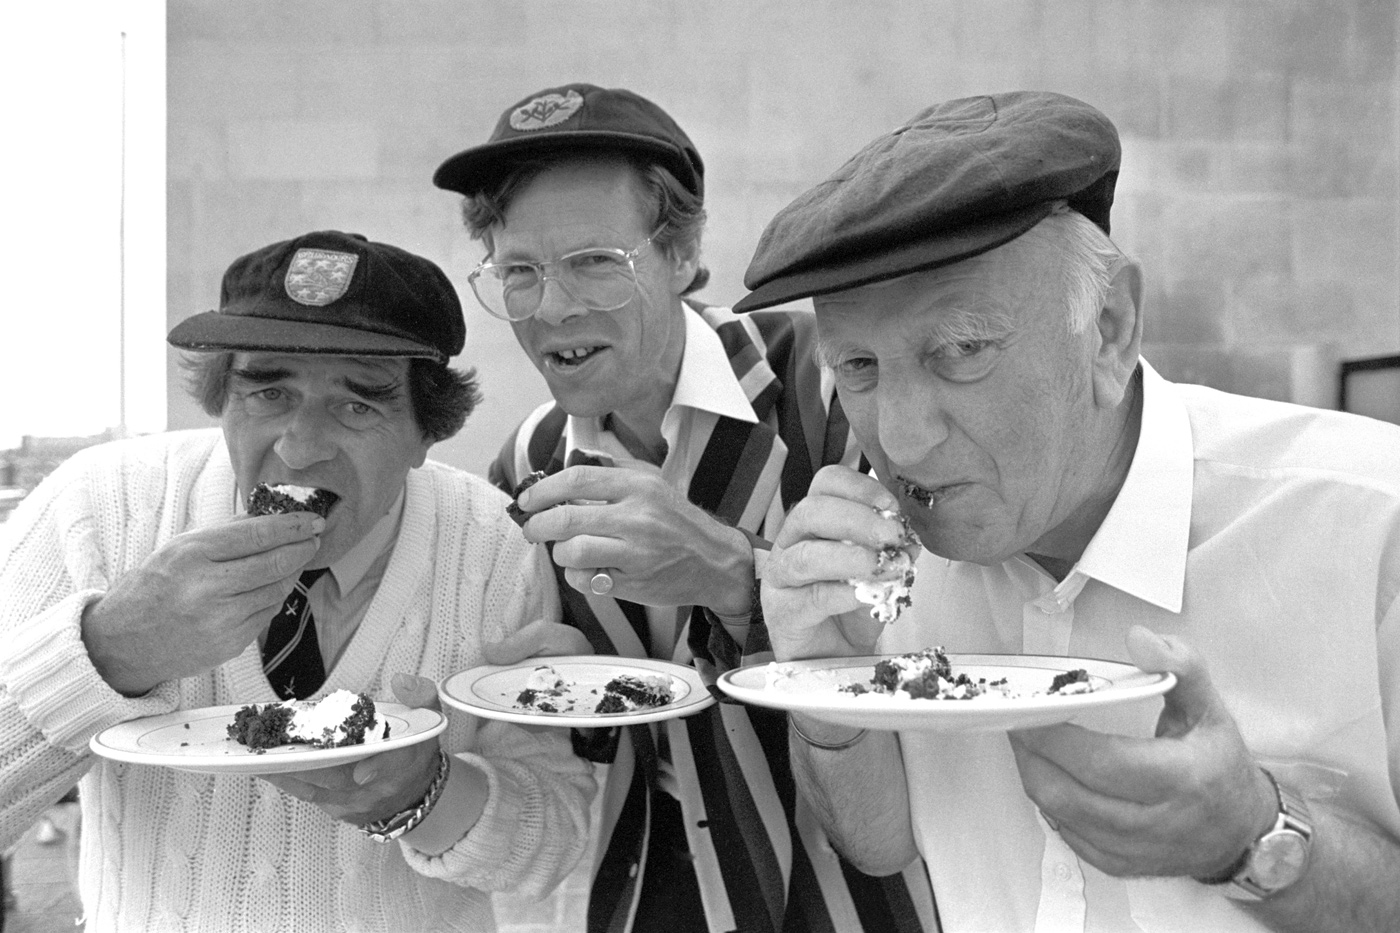 Let them eat cake (and have jolly japes): Christopher Martin-Jenkins (centre), flanked by Fred Trueman and Brian Johnston of <i>TMS</i> 1989